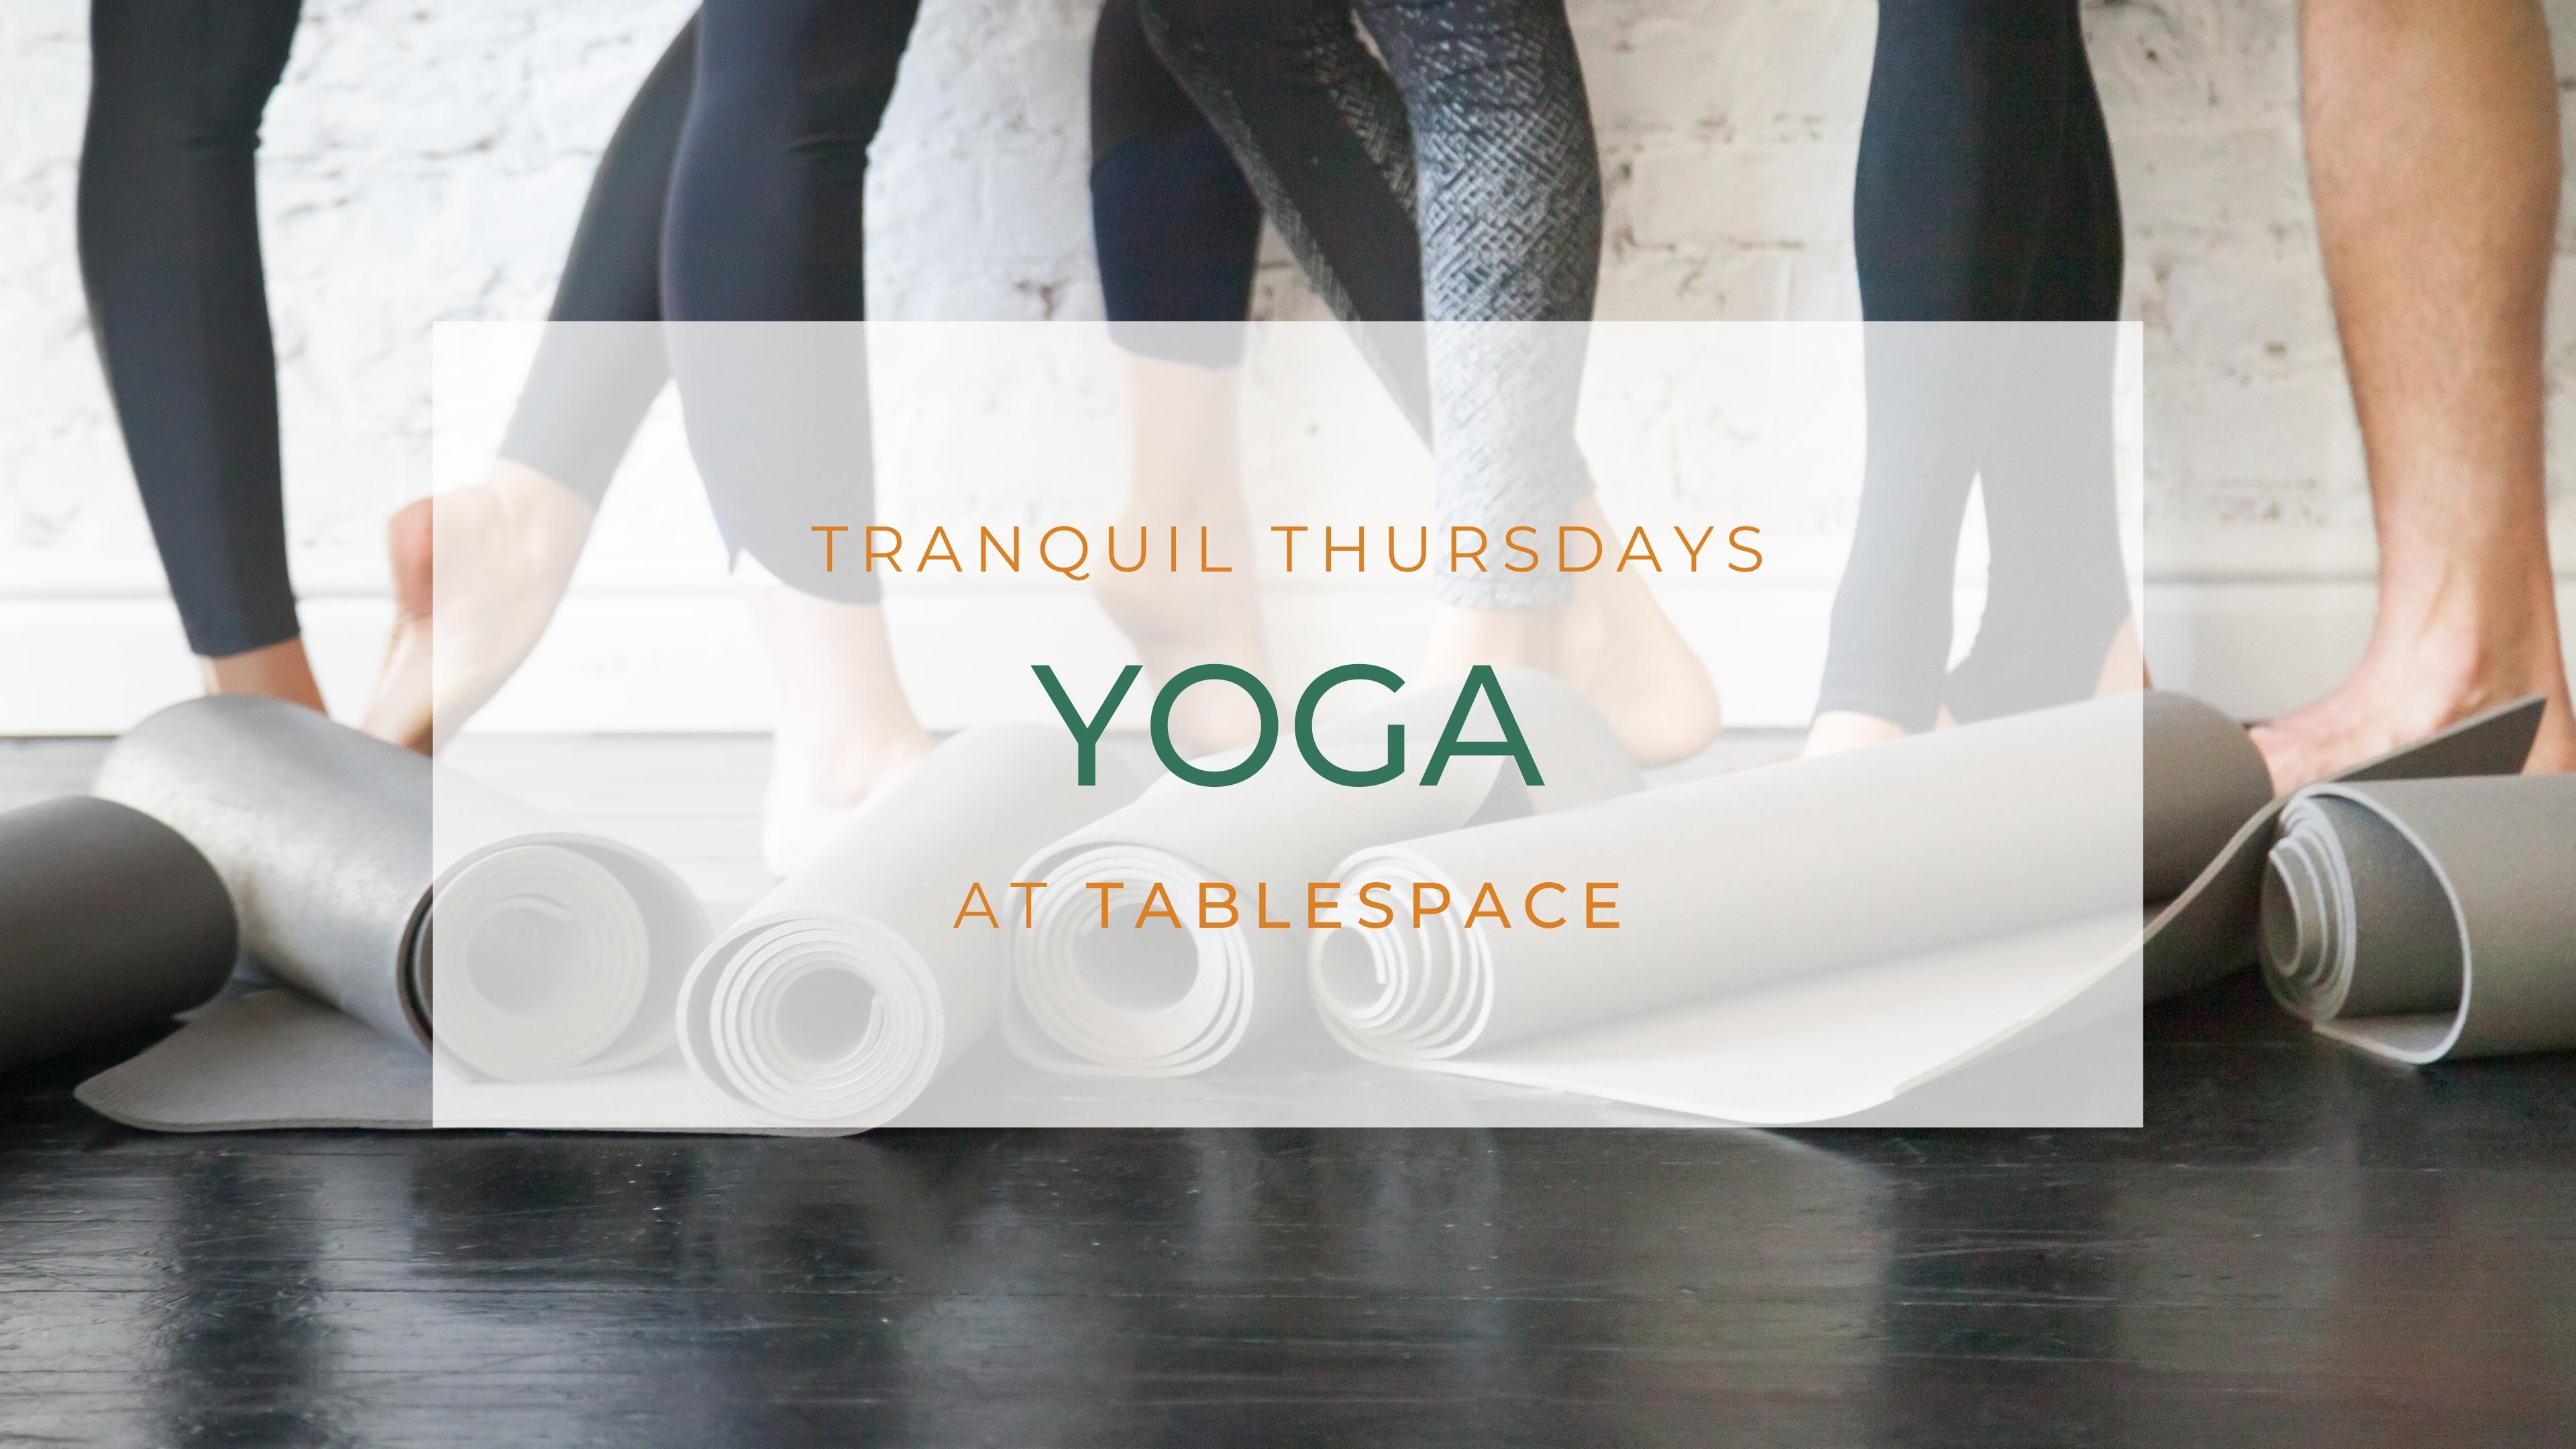 Yoga: Tranquil Thursdays at TableSpace